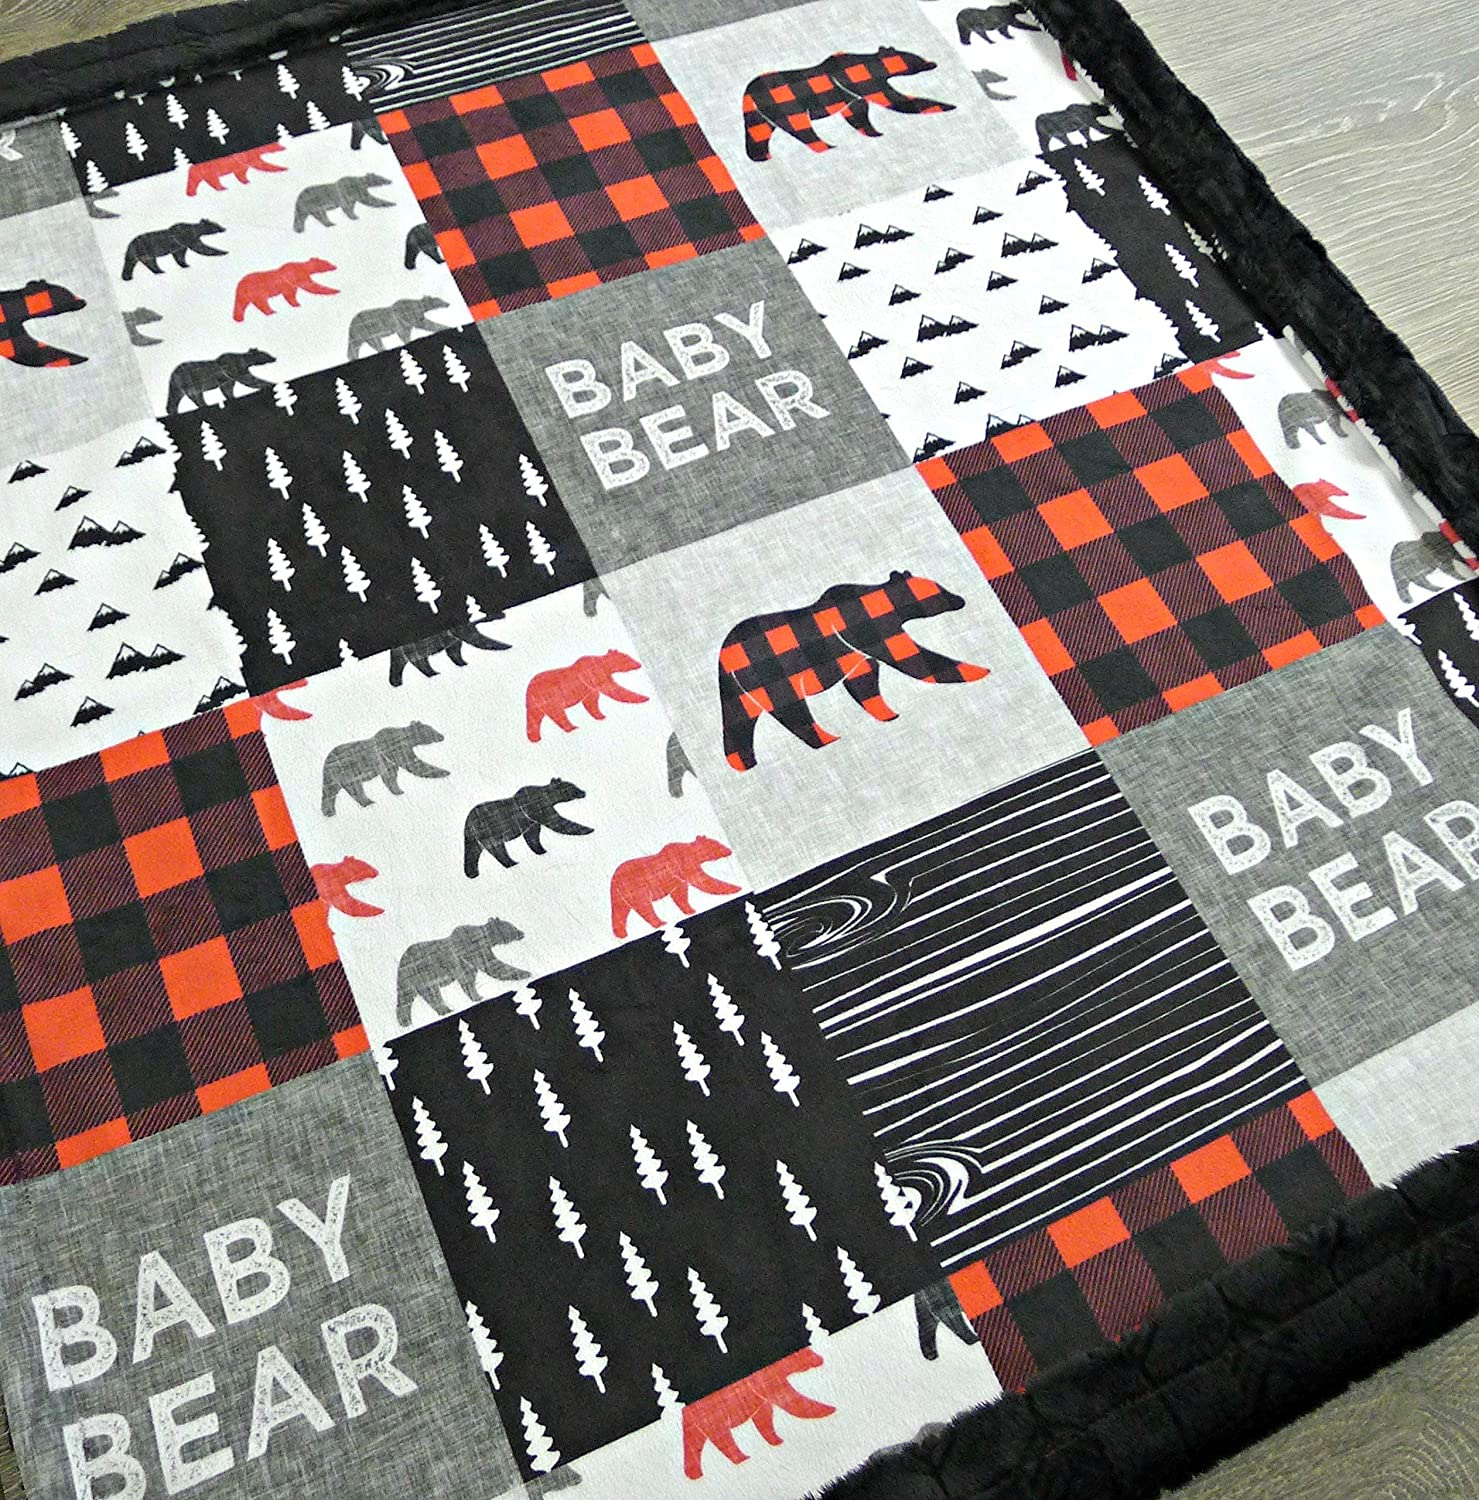 99cfea4dd8a8c Bear Baby Blanket - Baby Bear Baby Blanket - Minky Baby Blanket - Black  White Red - Woodland Blanket -Baby Blanket - Nursery Decor - Crib Bedding -  Faux ...